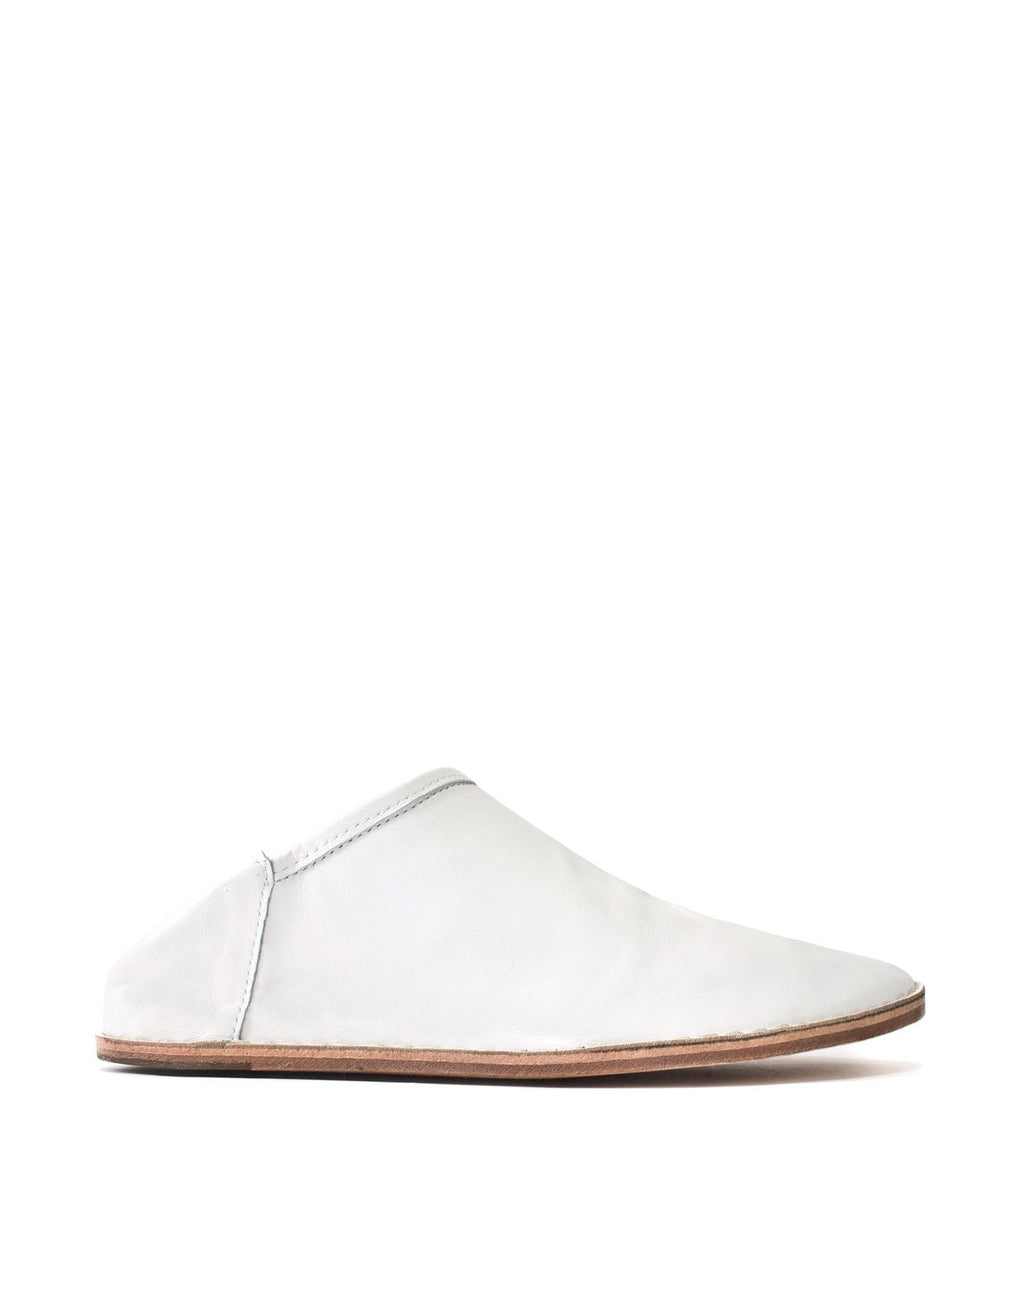 Designer classic white minimal soft leather slip on slipper shoe